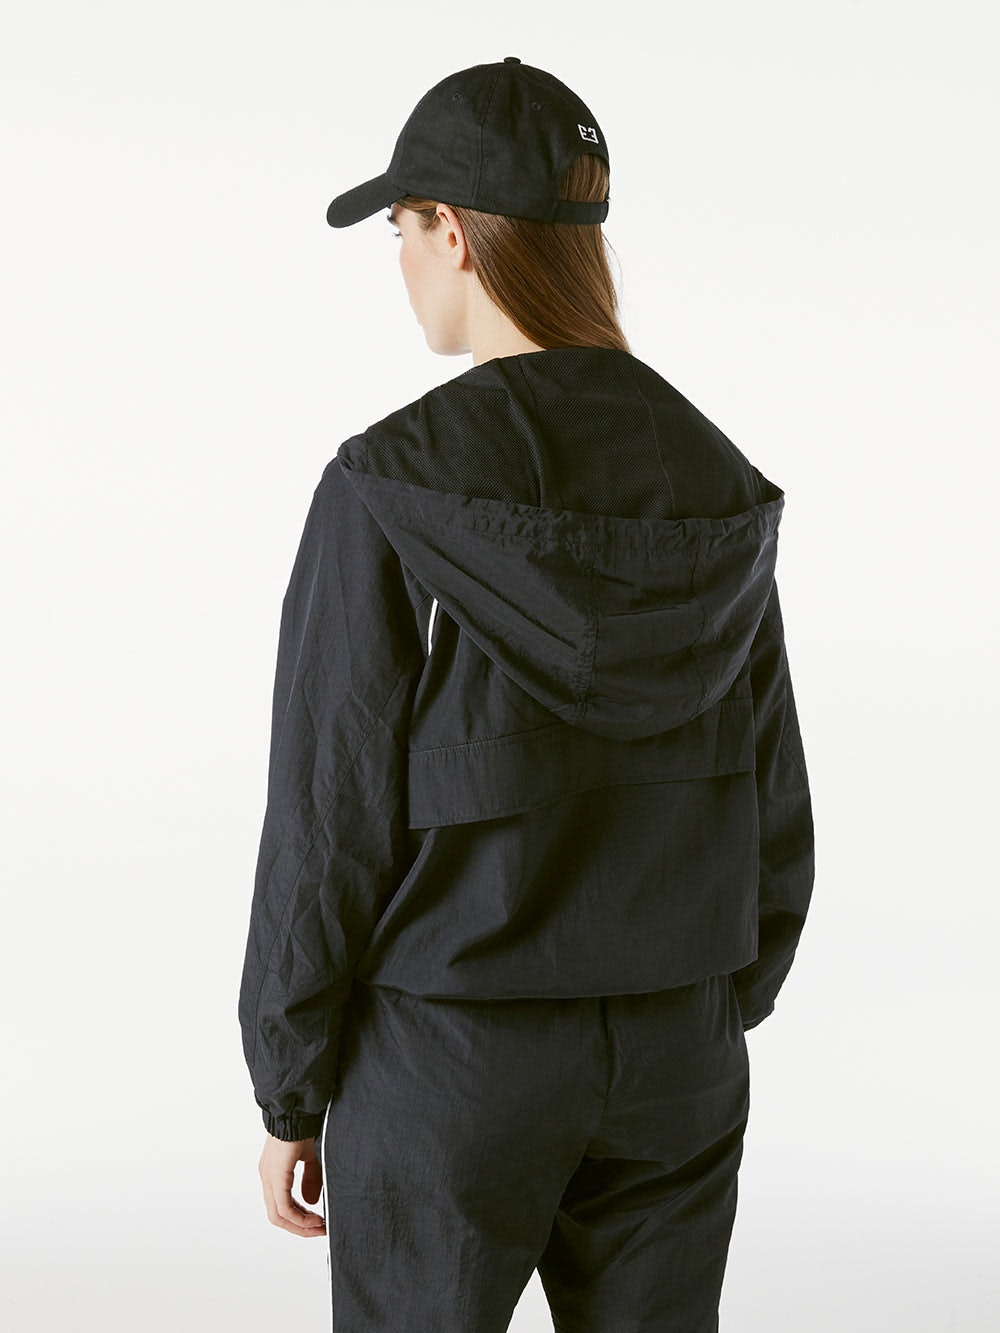 jacket back view